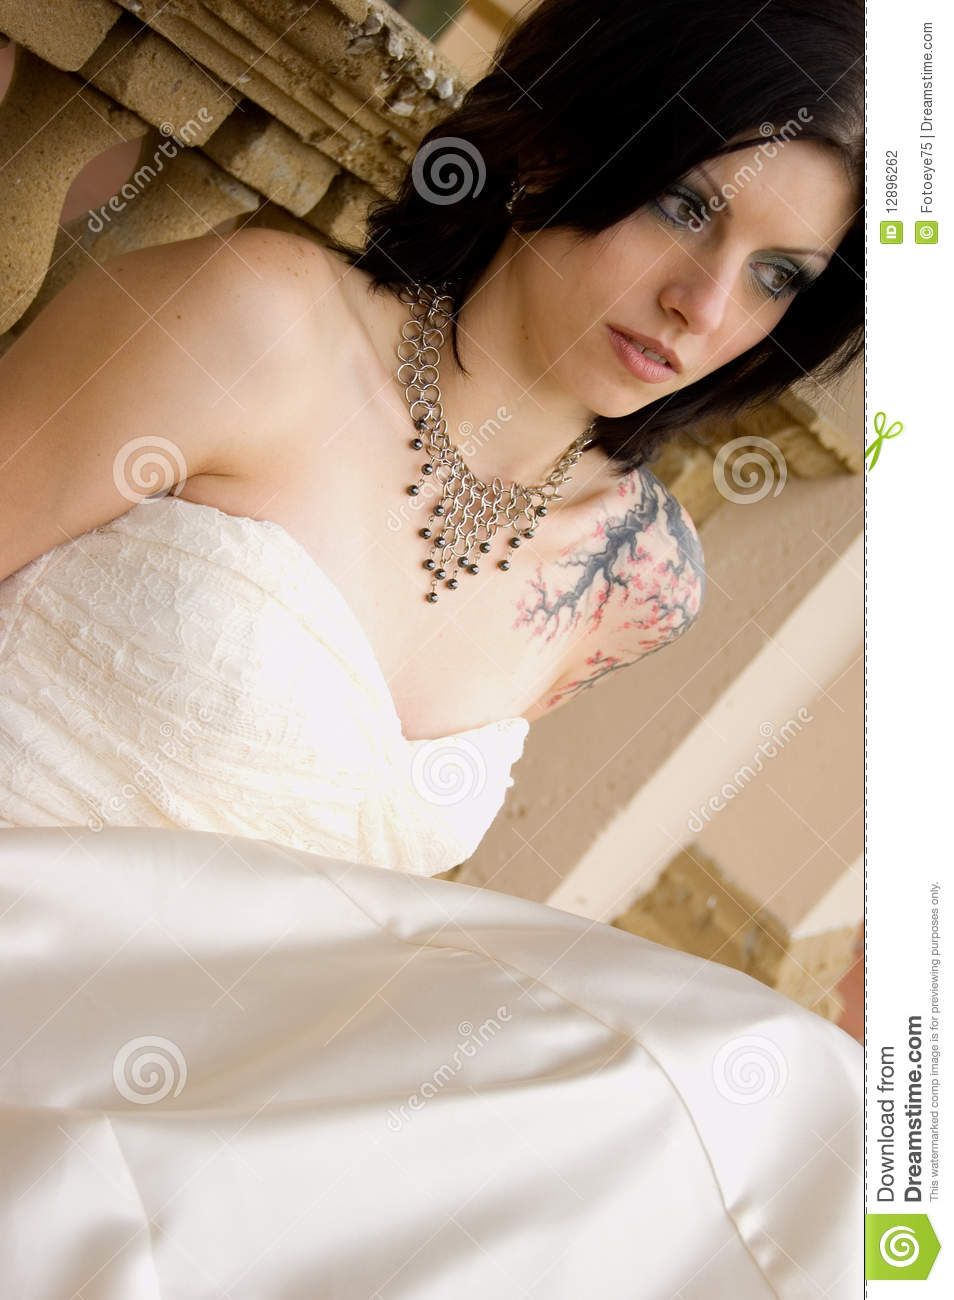 Tattoo Woman In Bridal Dress Stock Photo - Image of bride ...